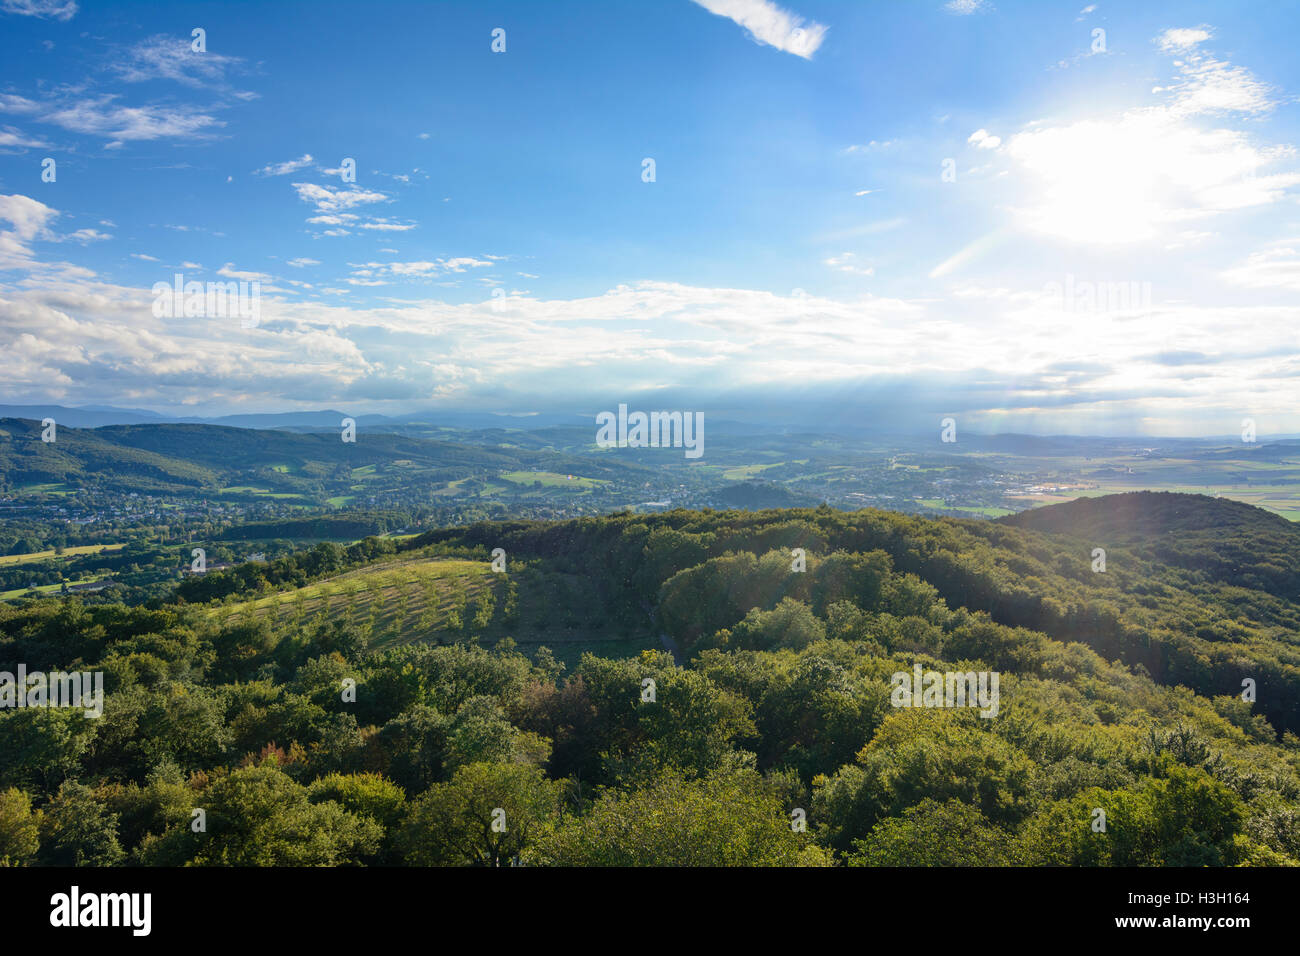 Neulengbach: view from outlook tower Buchbergwarte to Neulengbach, Wienerwald, Vienna Woods, Niederösterreich, - Stock Image